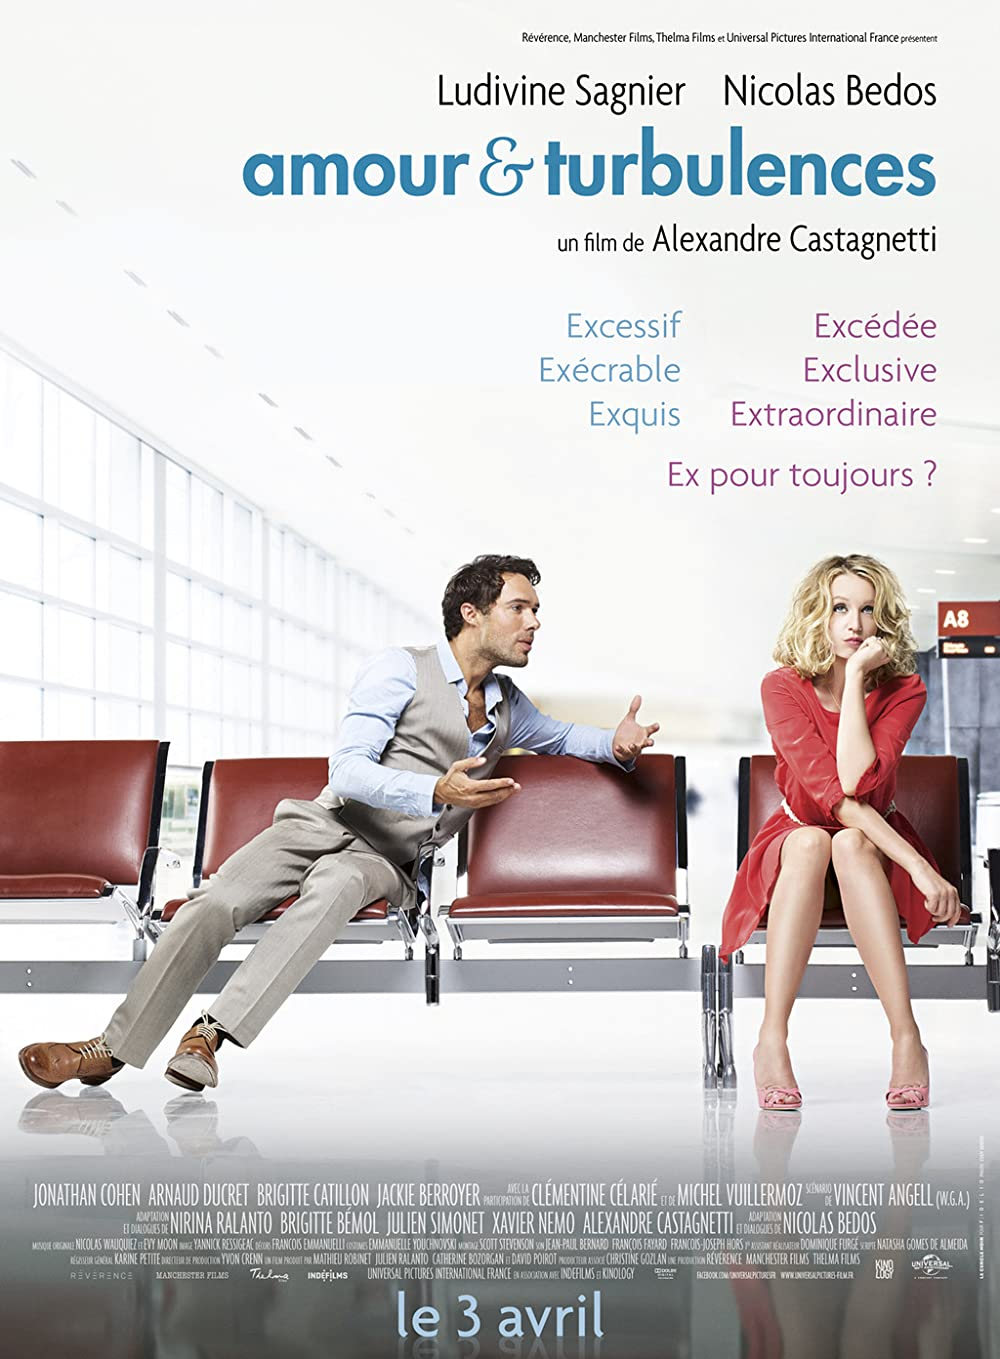 The love imdb air 2013 in is Love &